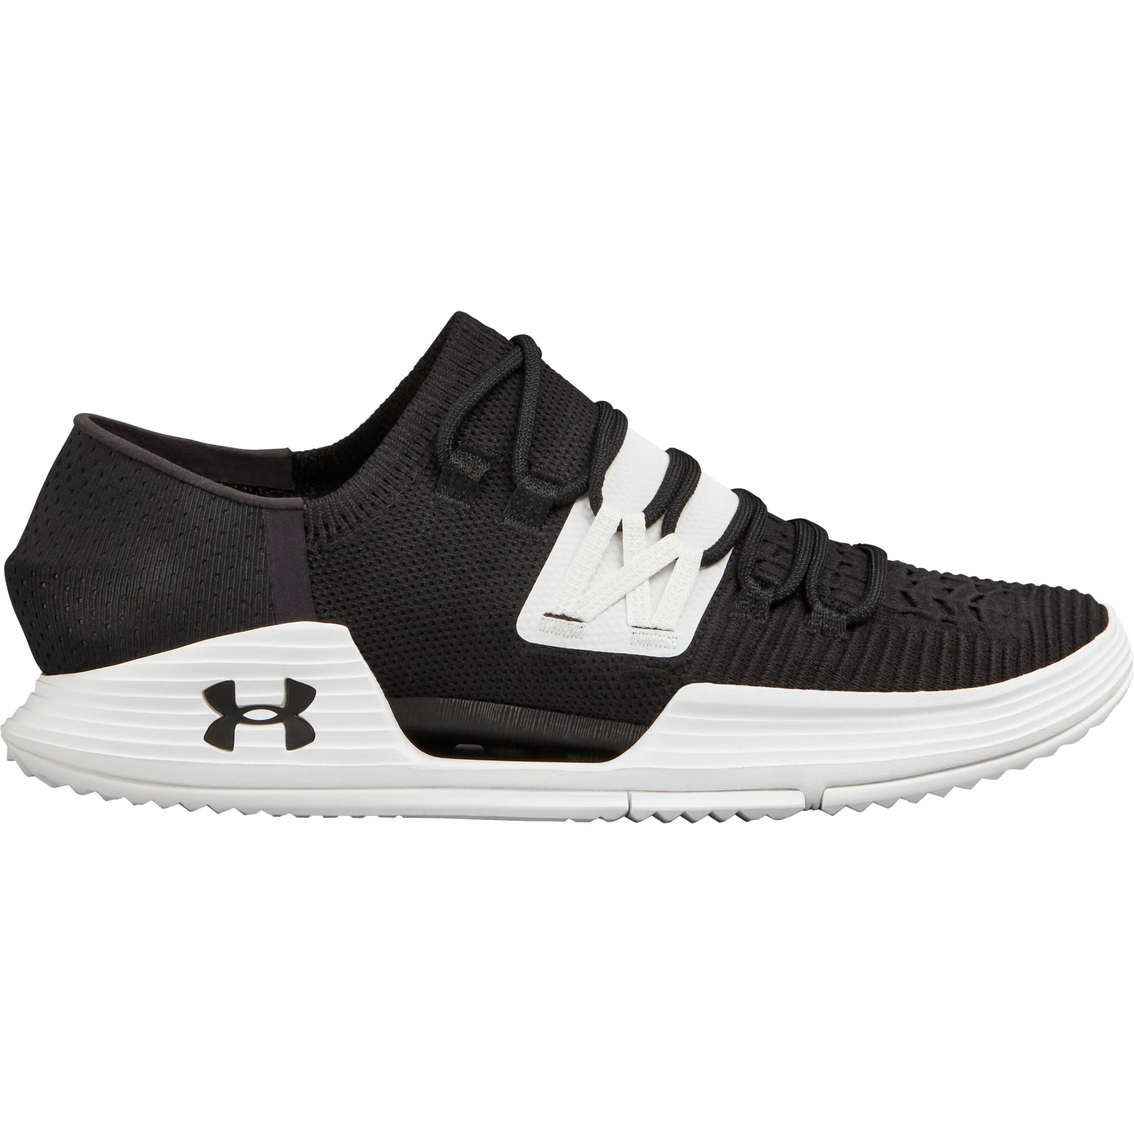 99c7492176c Under Armour Ua Speedform Amp 3.0 Training Shoes